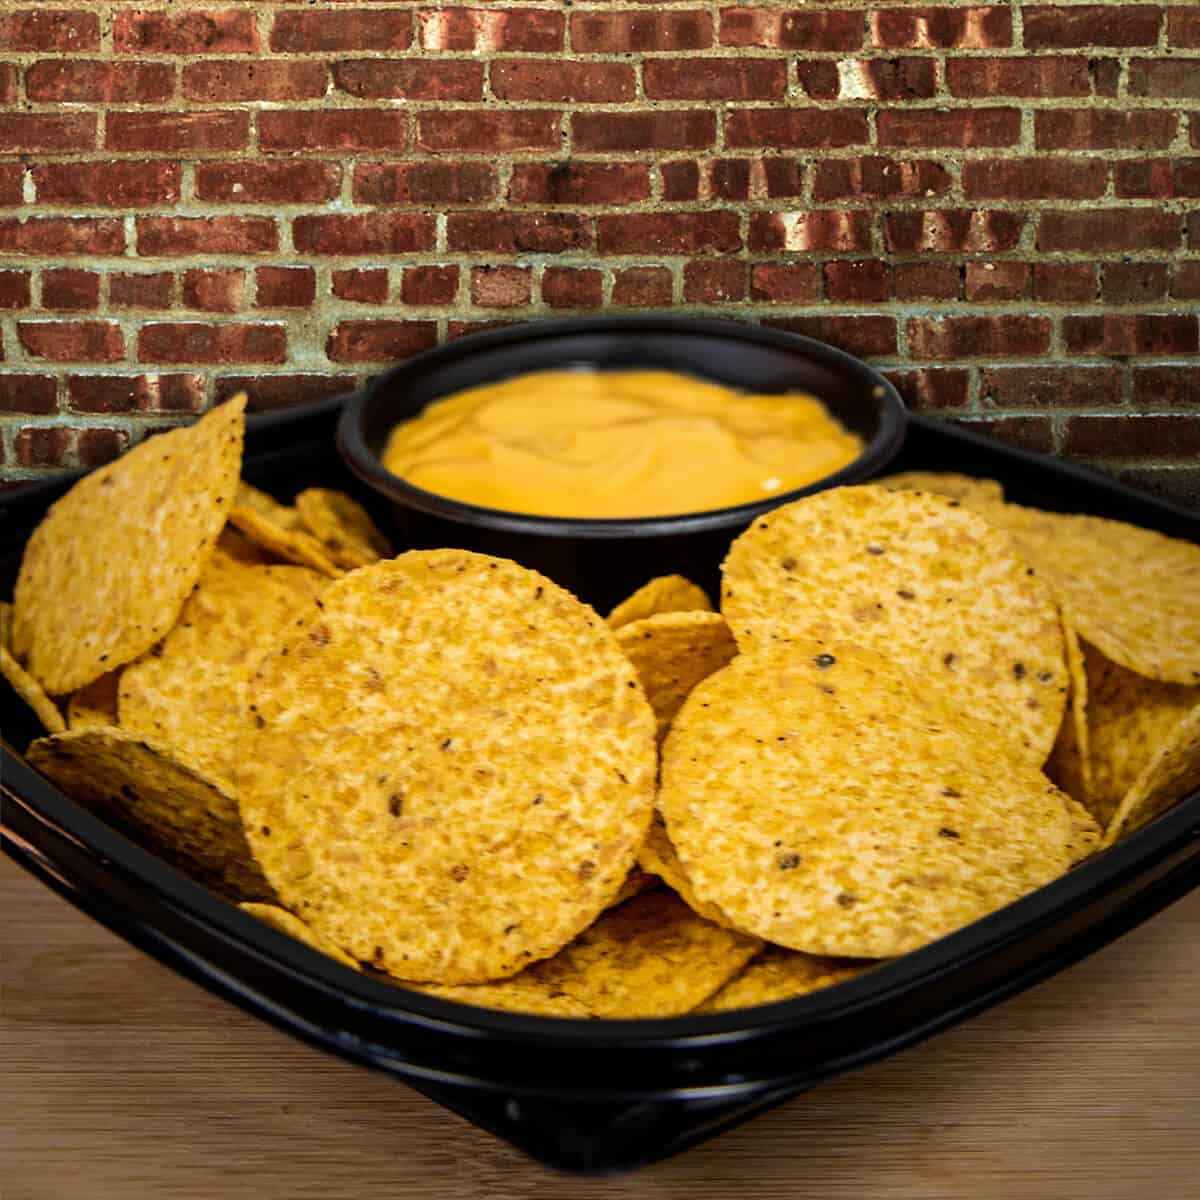 Basket of nachos with serving of cheese